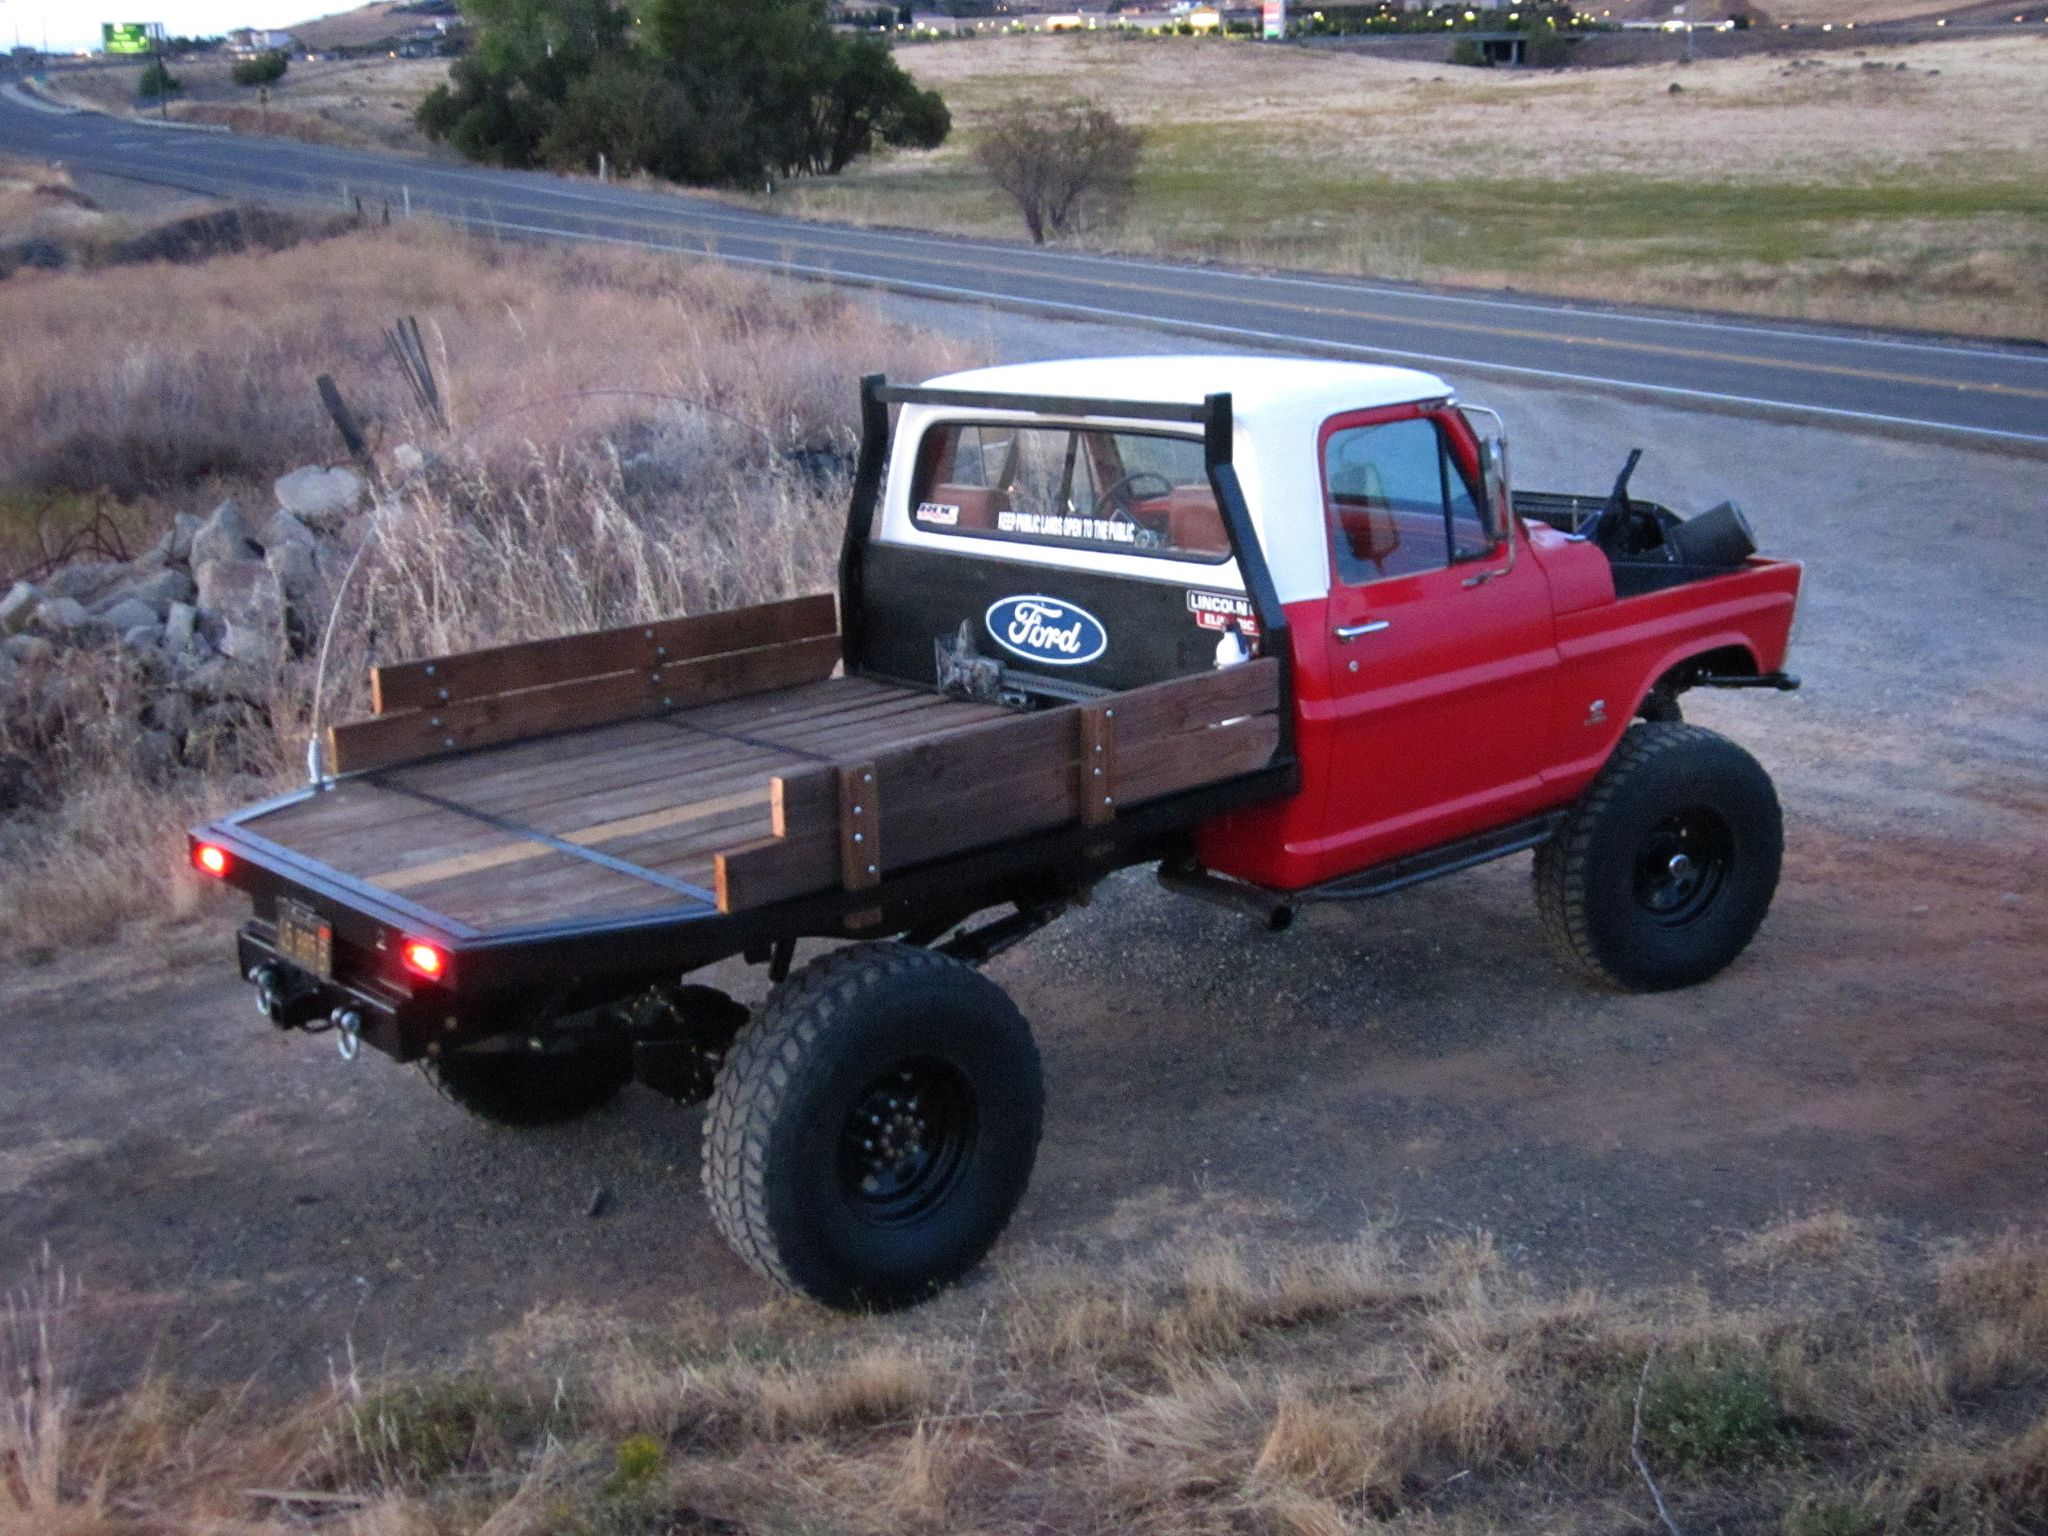 I want a custom flatbed for my truck. Fabricators look